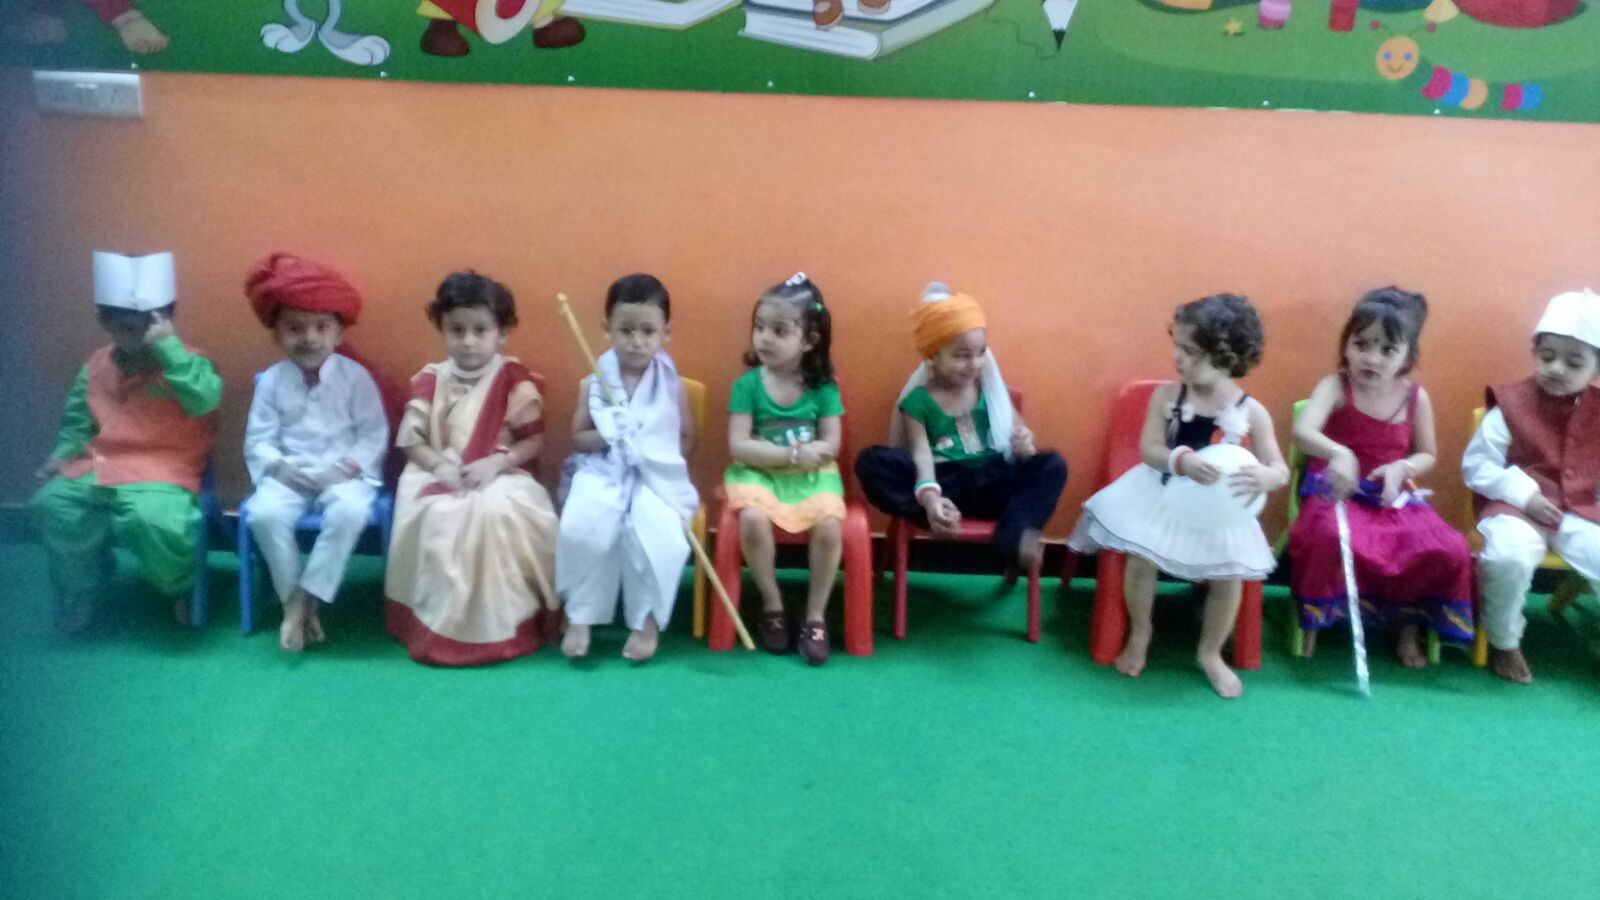 Bragnam Play school or Abacus Franchise in Chandigarh